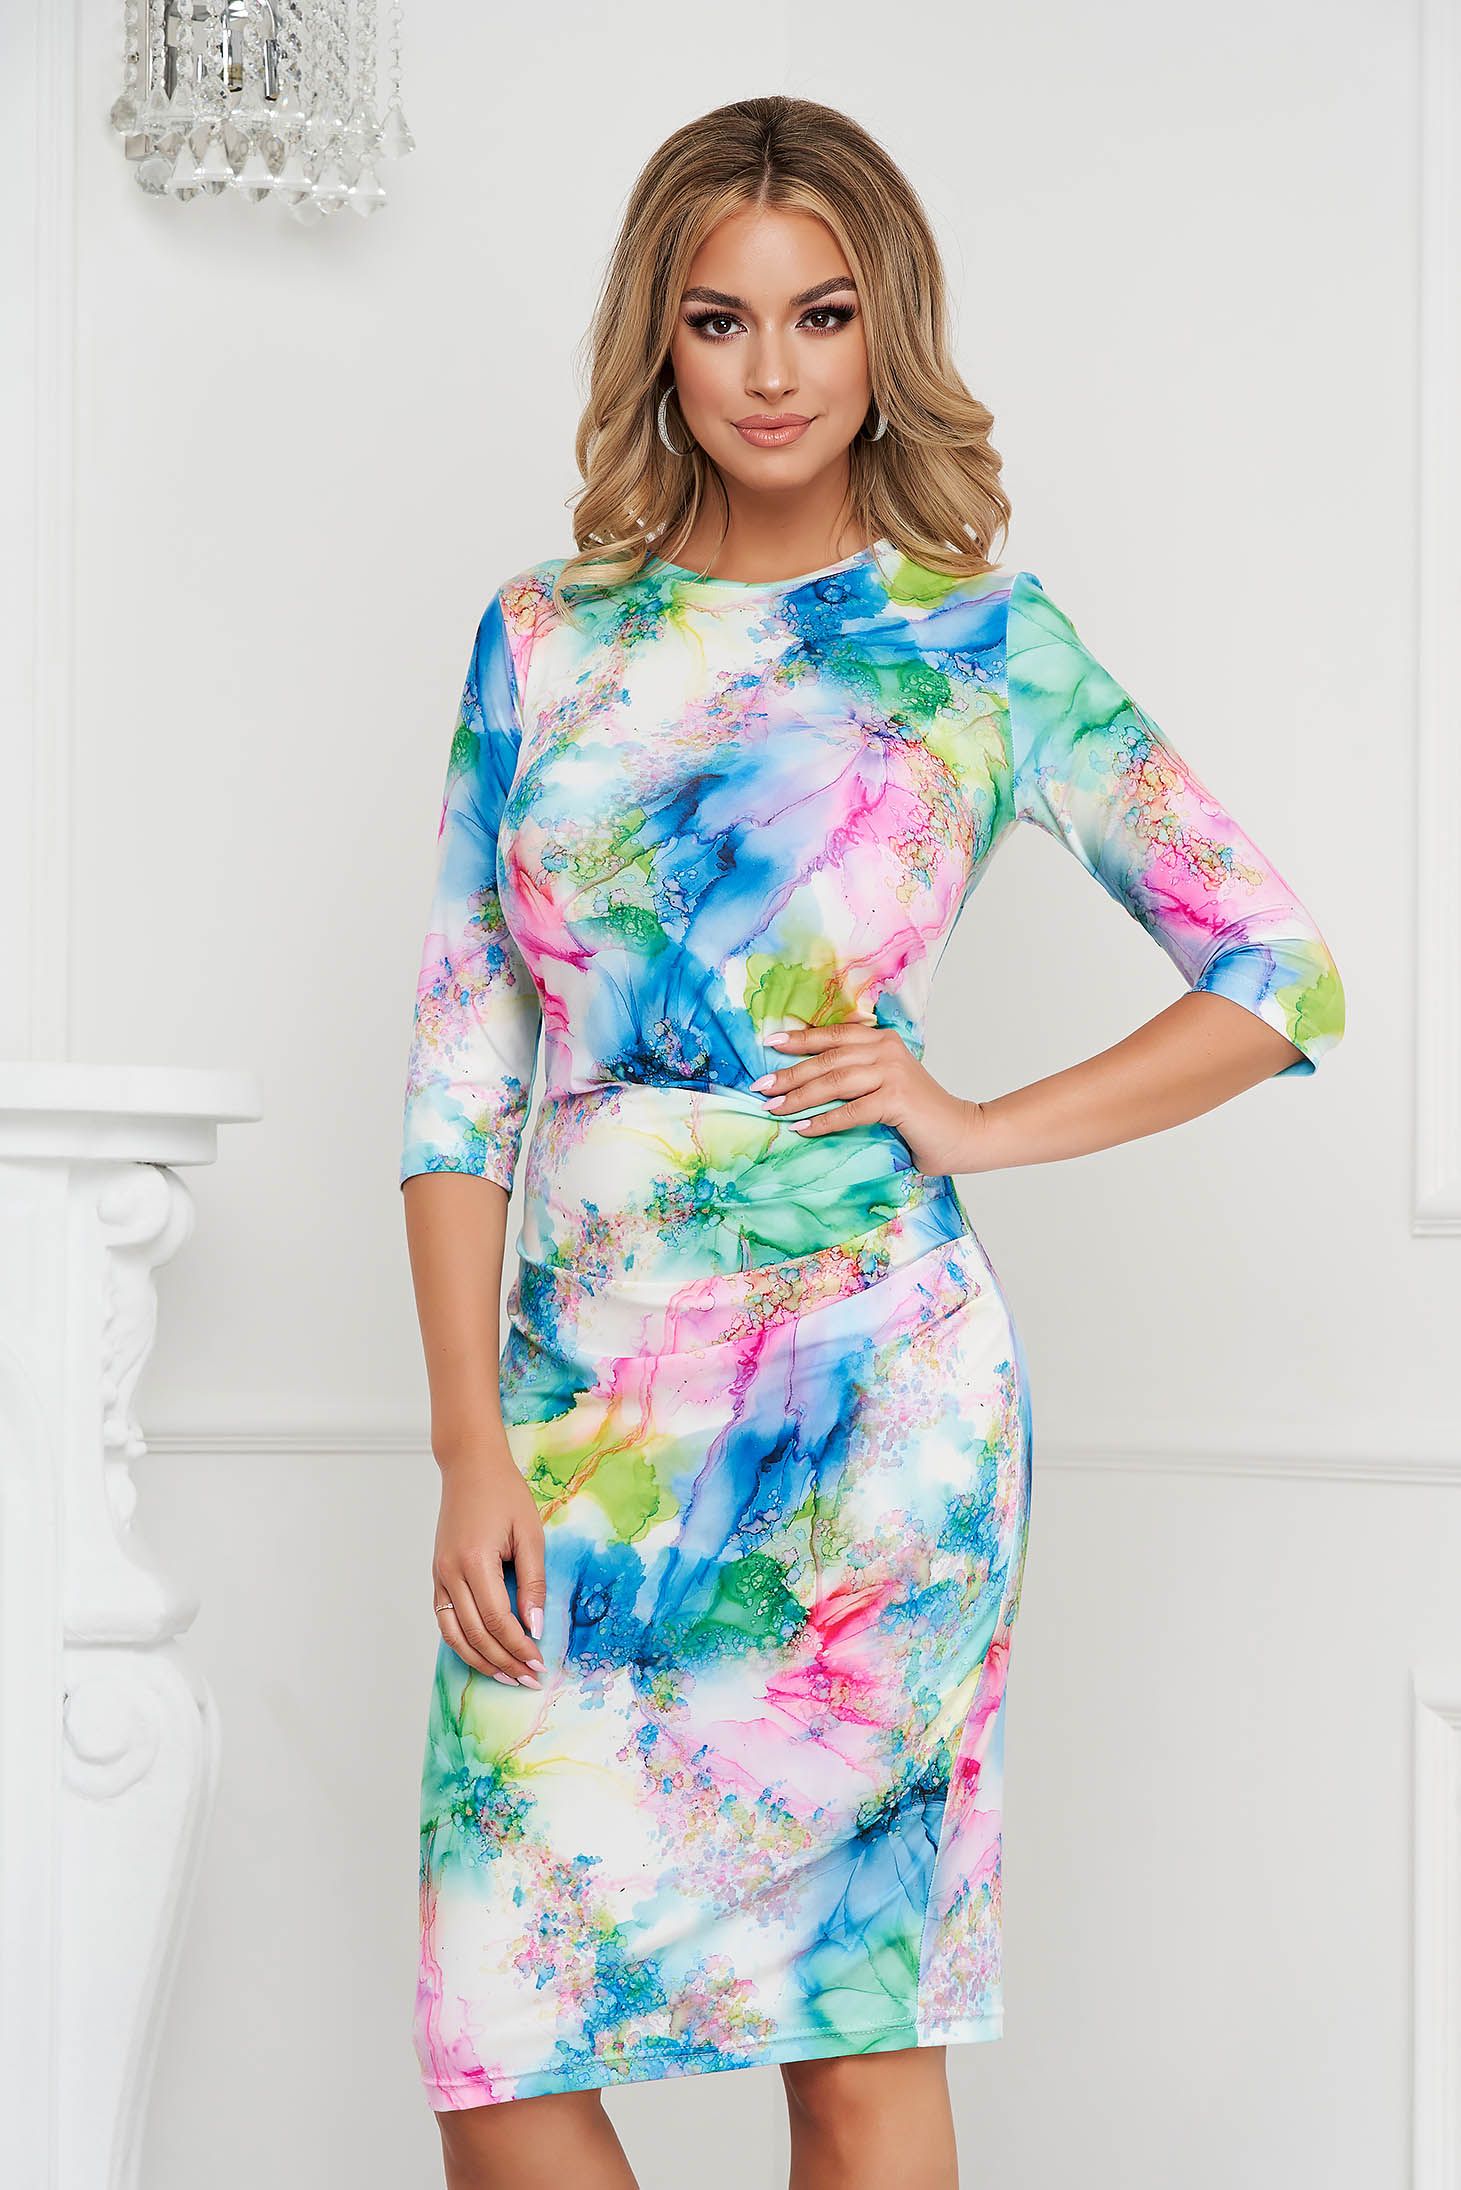 Rochie StarShinerS office midi tip creion din material elastic usor incretit in lateral si imprimeu unic